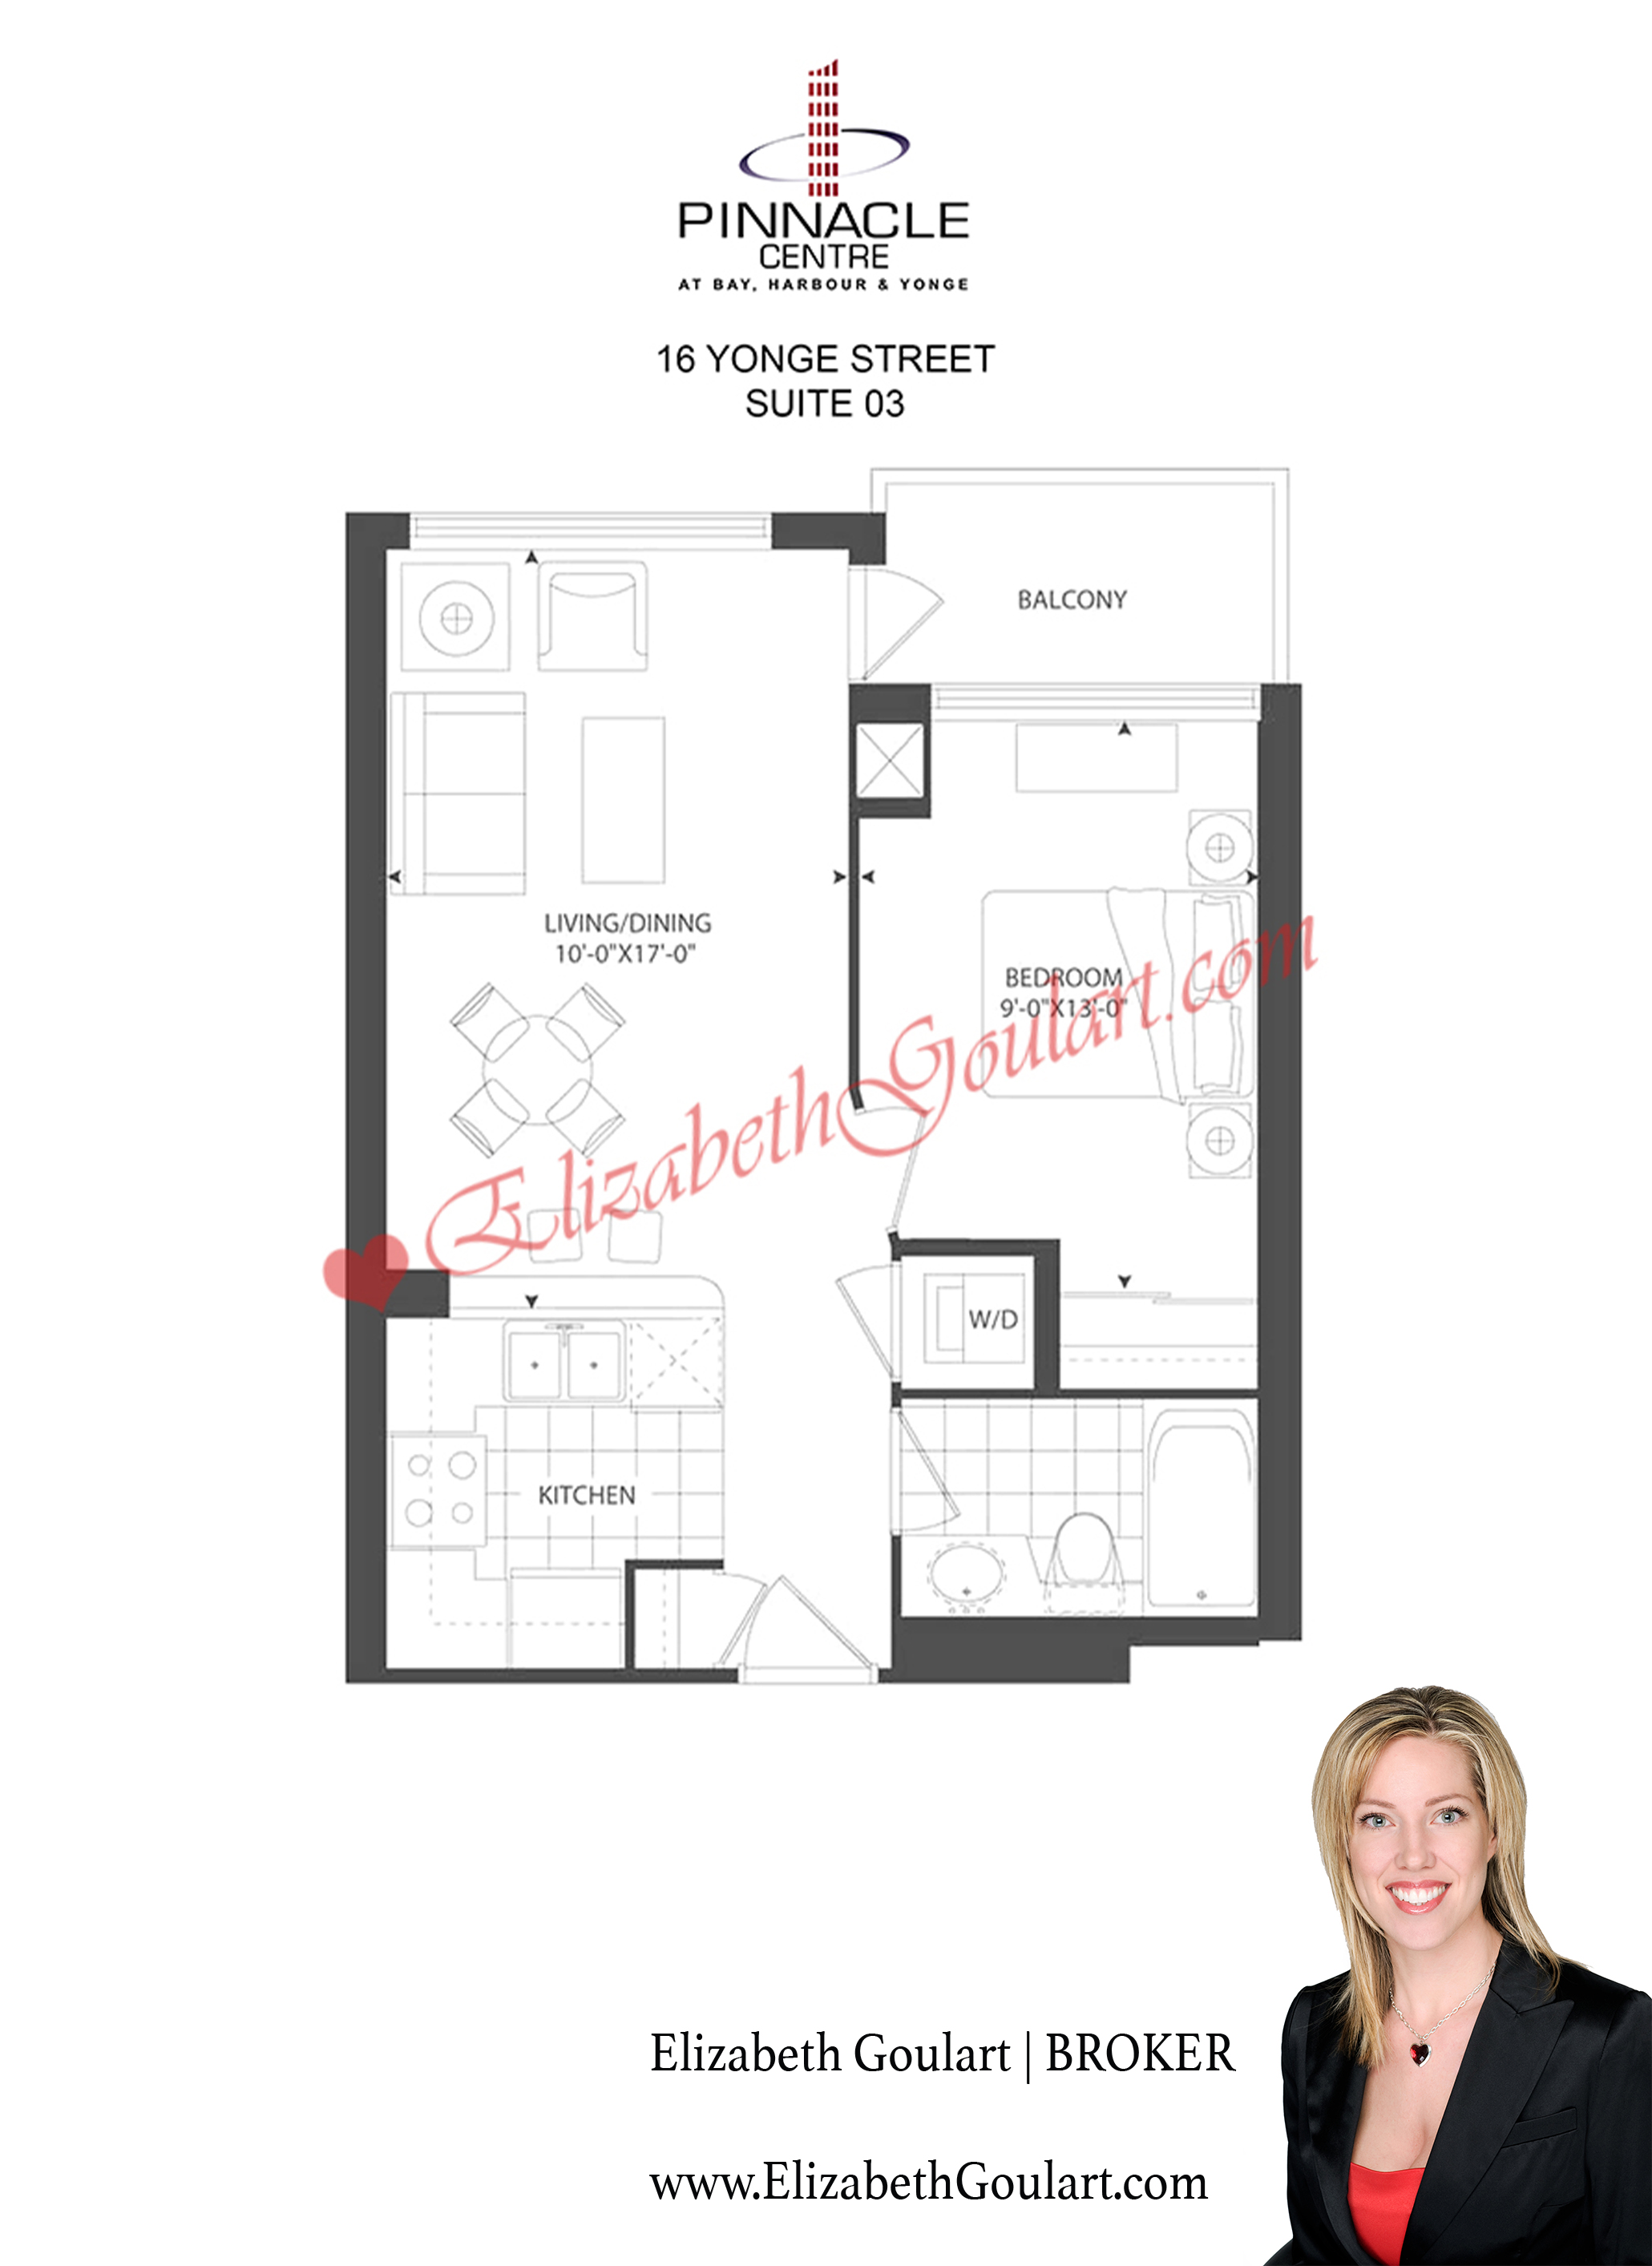 16 yonge street pinnacle centre condos floor plans For16 Yonge Floor Plans